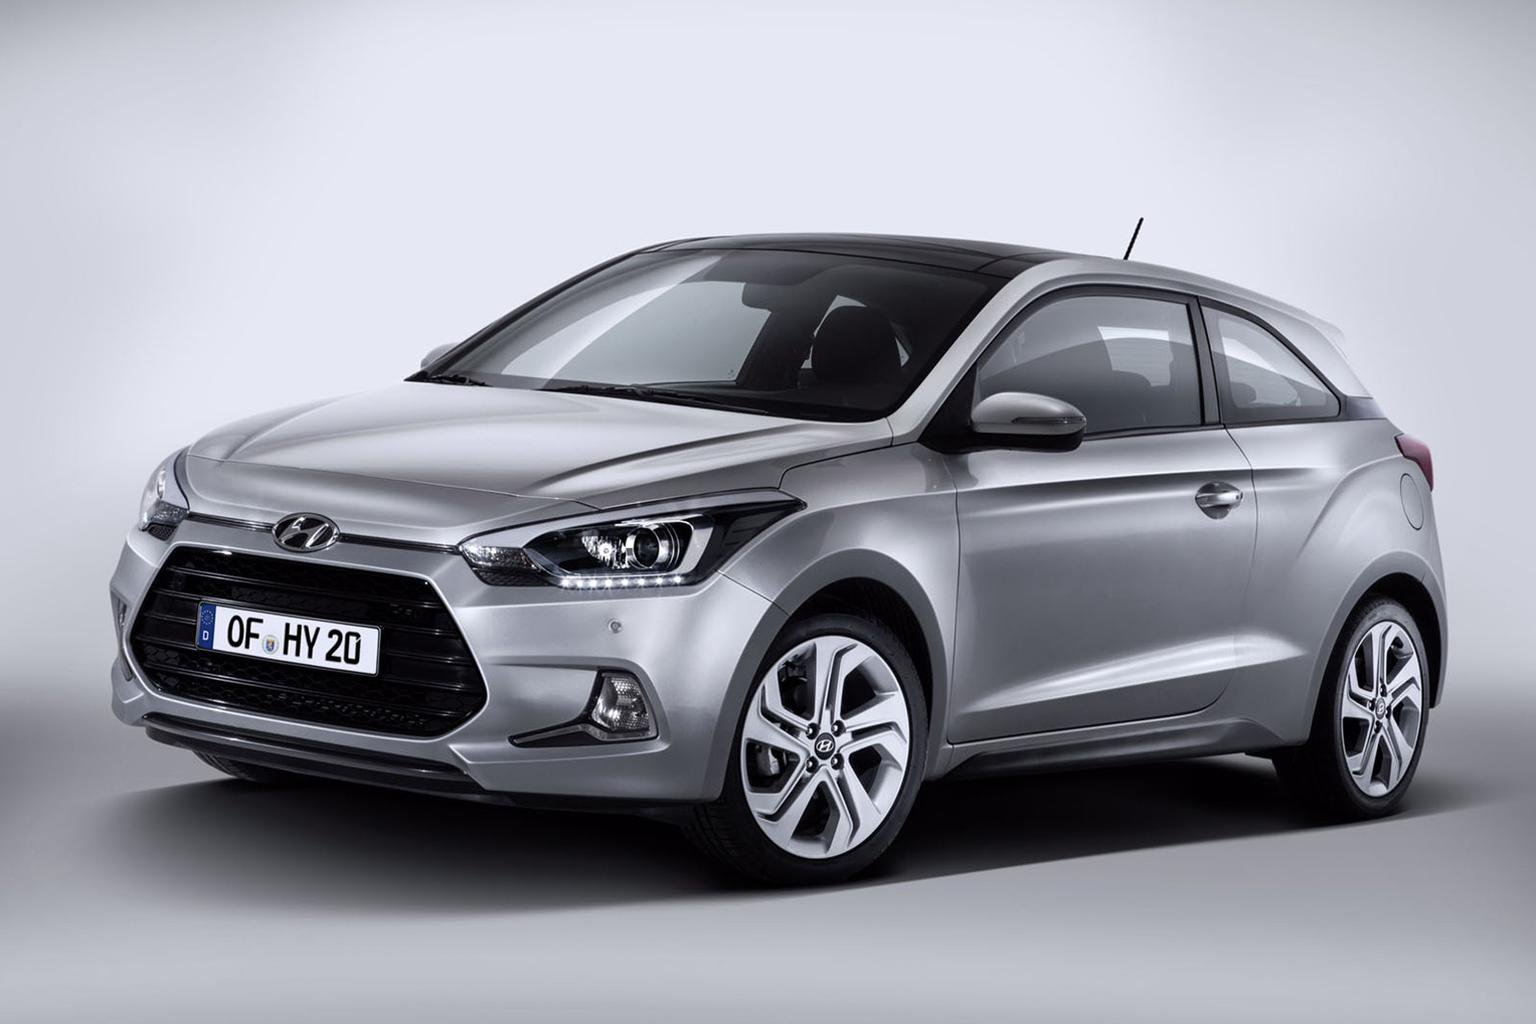 2015 Hyundai i20 Coupe revealed - new pictures, engines and on-sale date